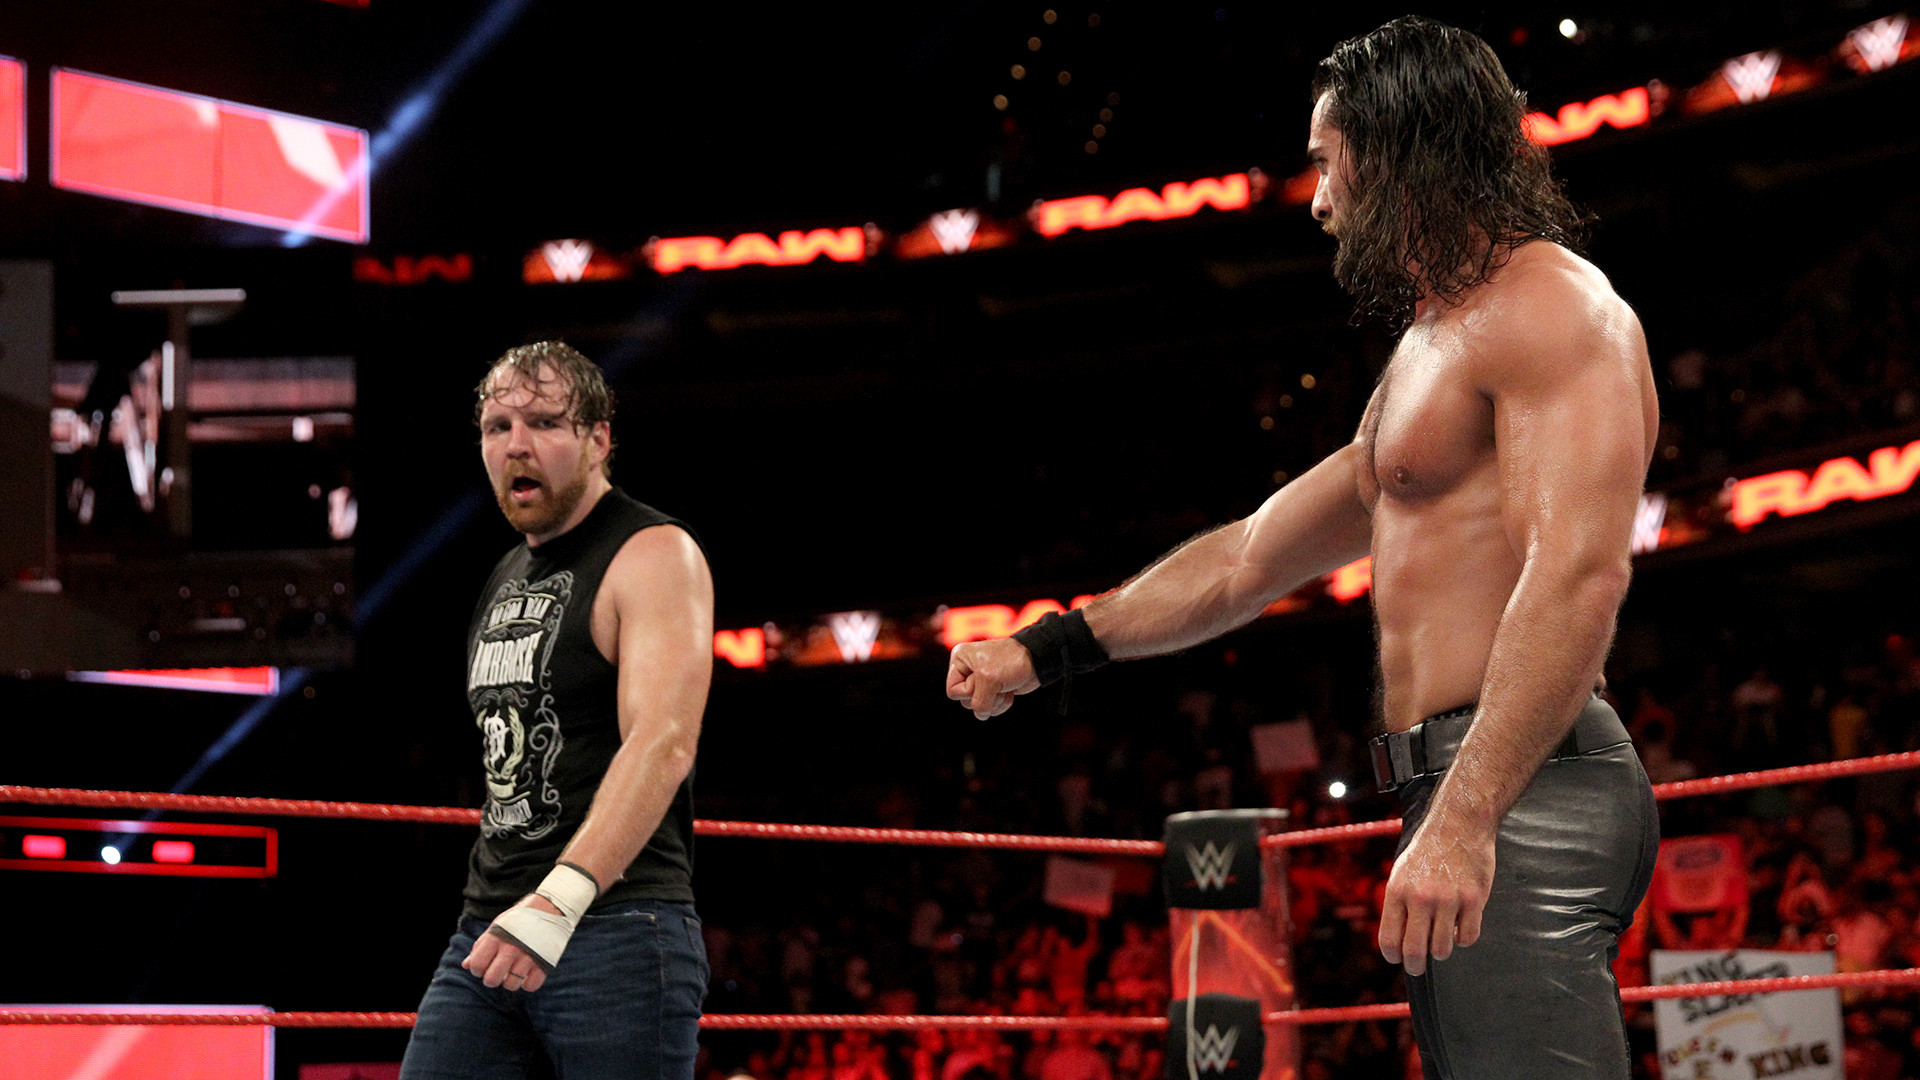 Seth Rollins & Dean Ambrose def. The Miz-tourage. So, can Dean Ambrose and Seth  Rollins co-exist? Yes! But have they truly moved on from past events?